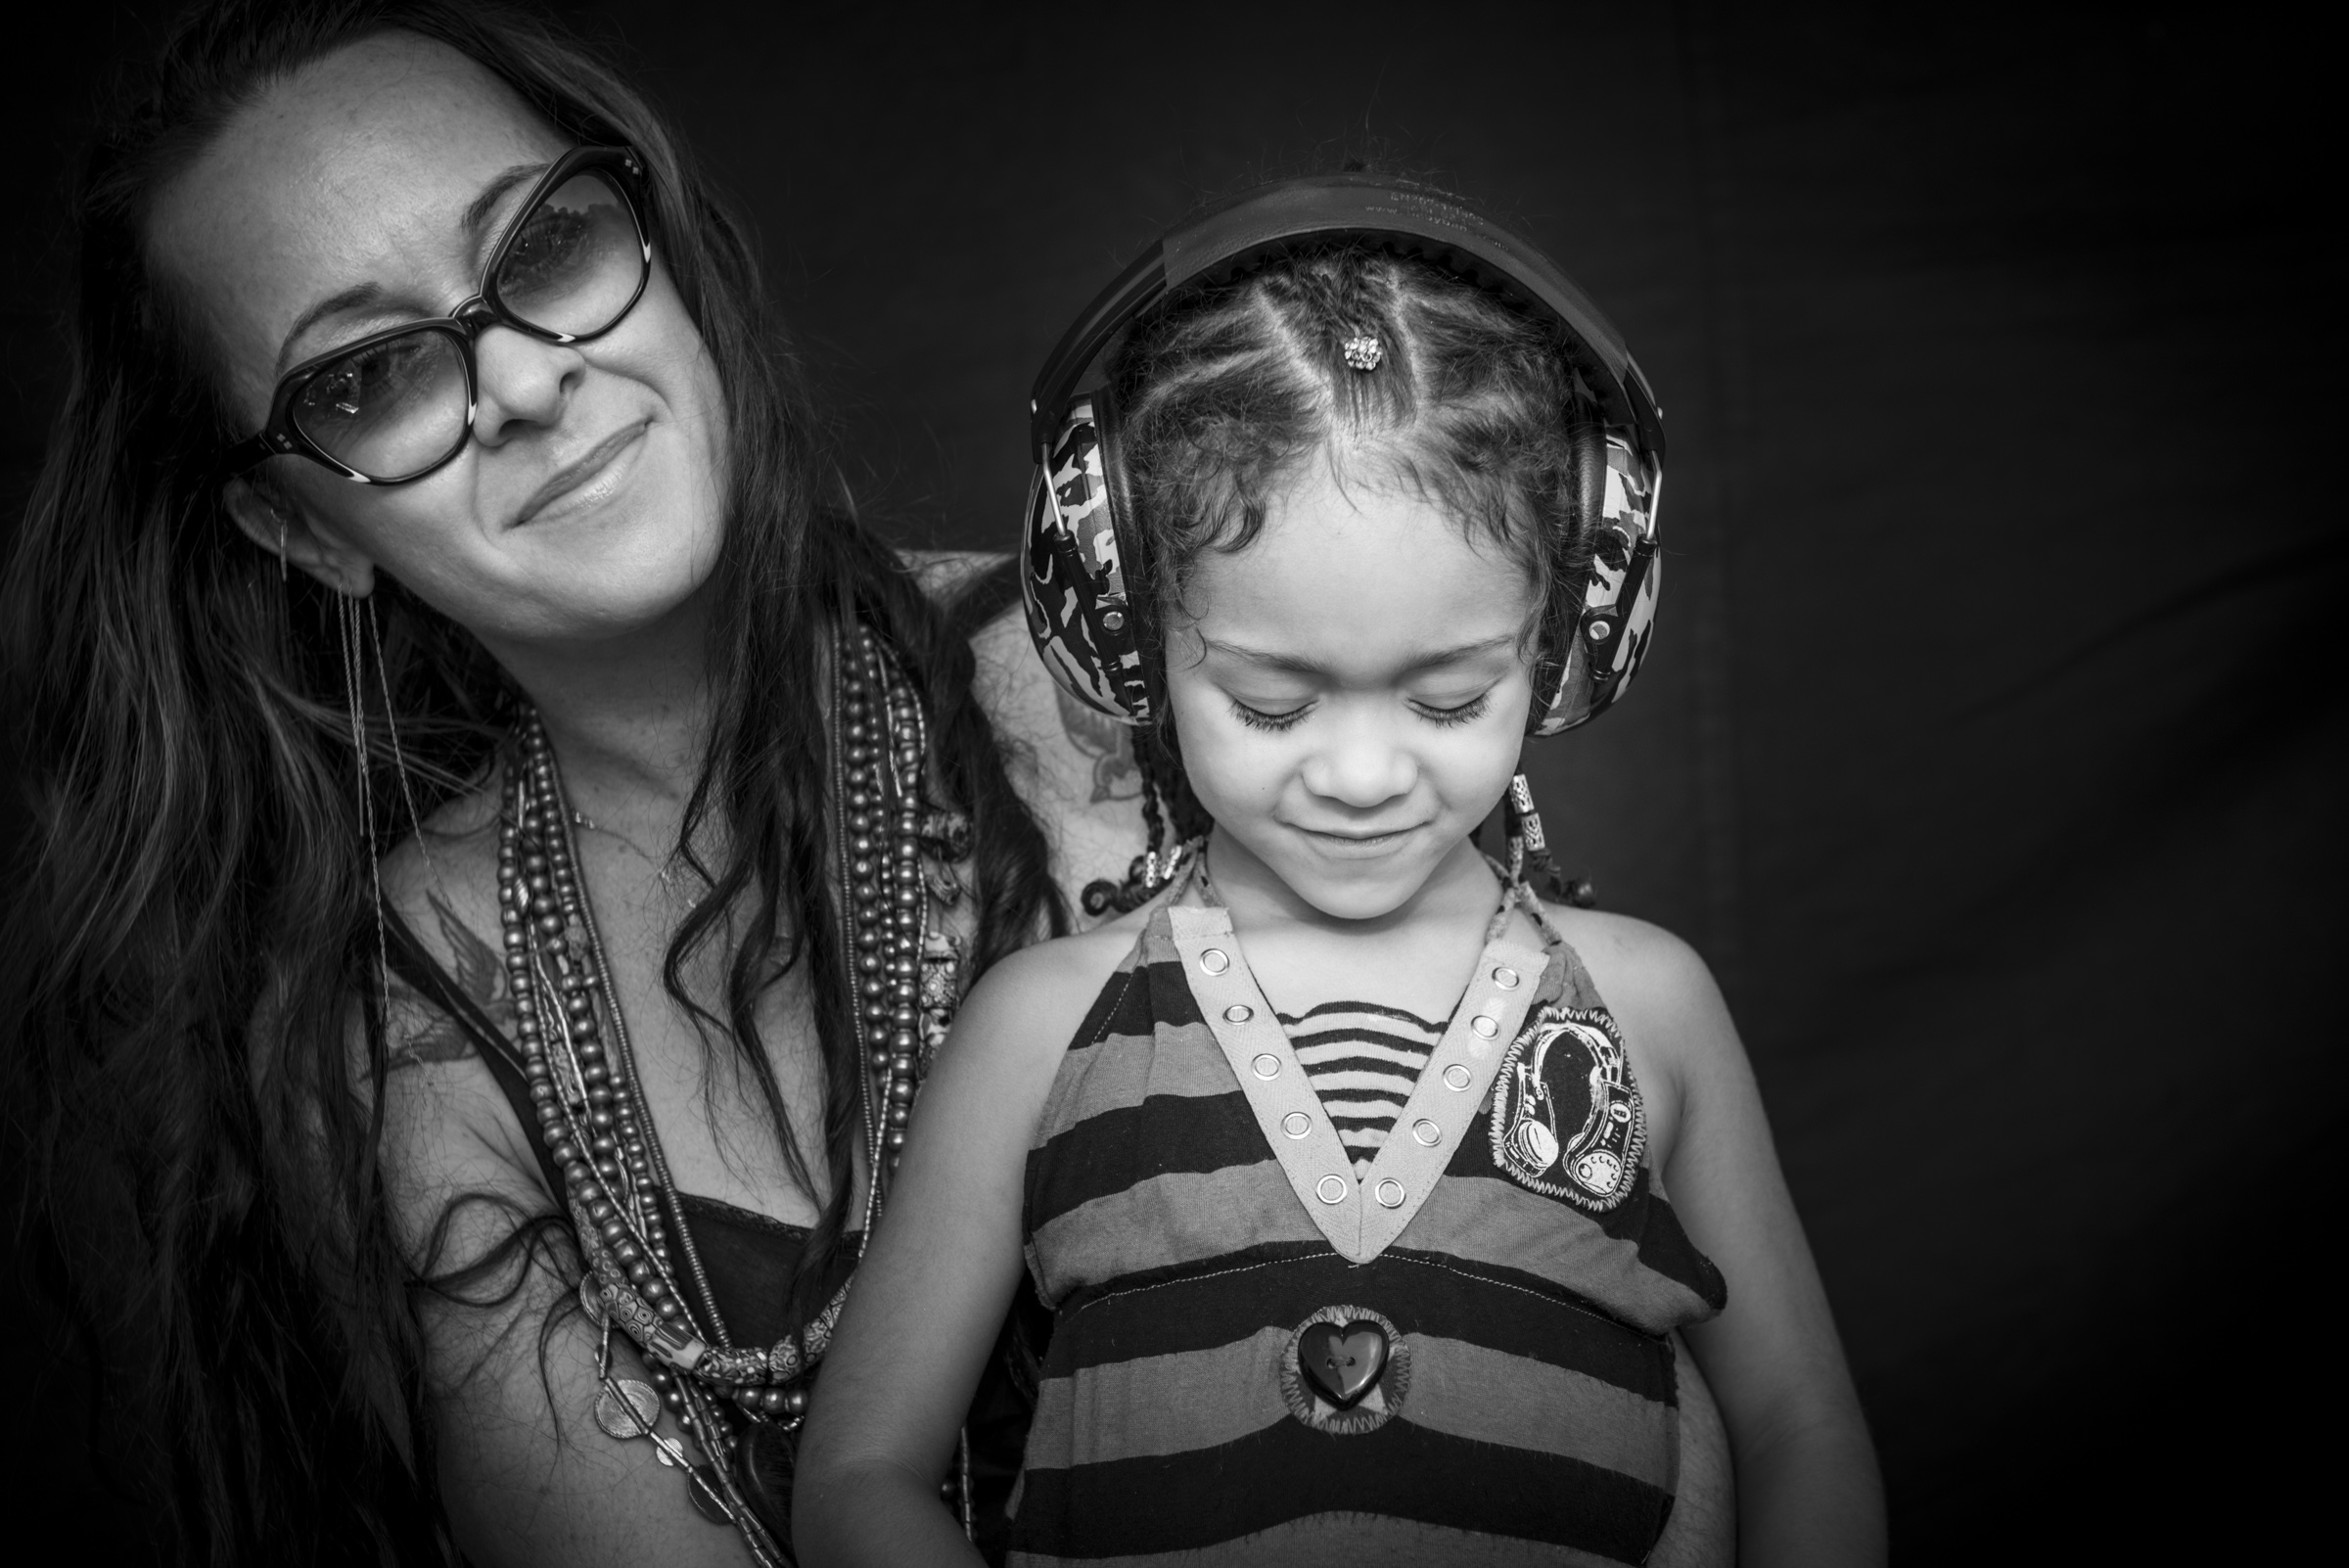 Mother with daughter in headphones photographed on black background